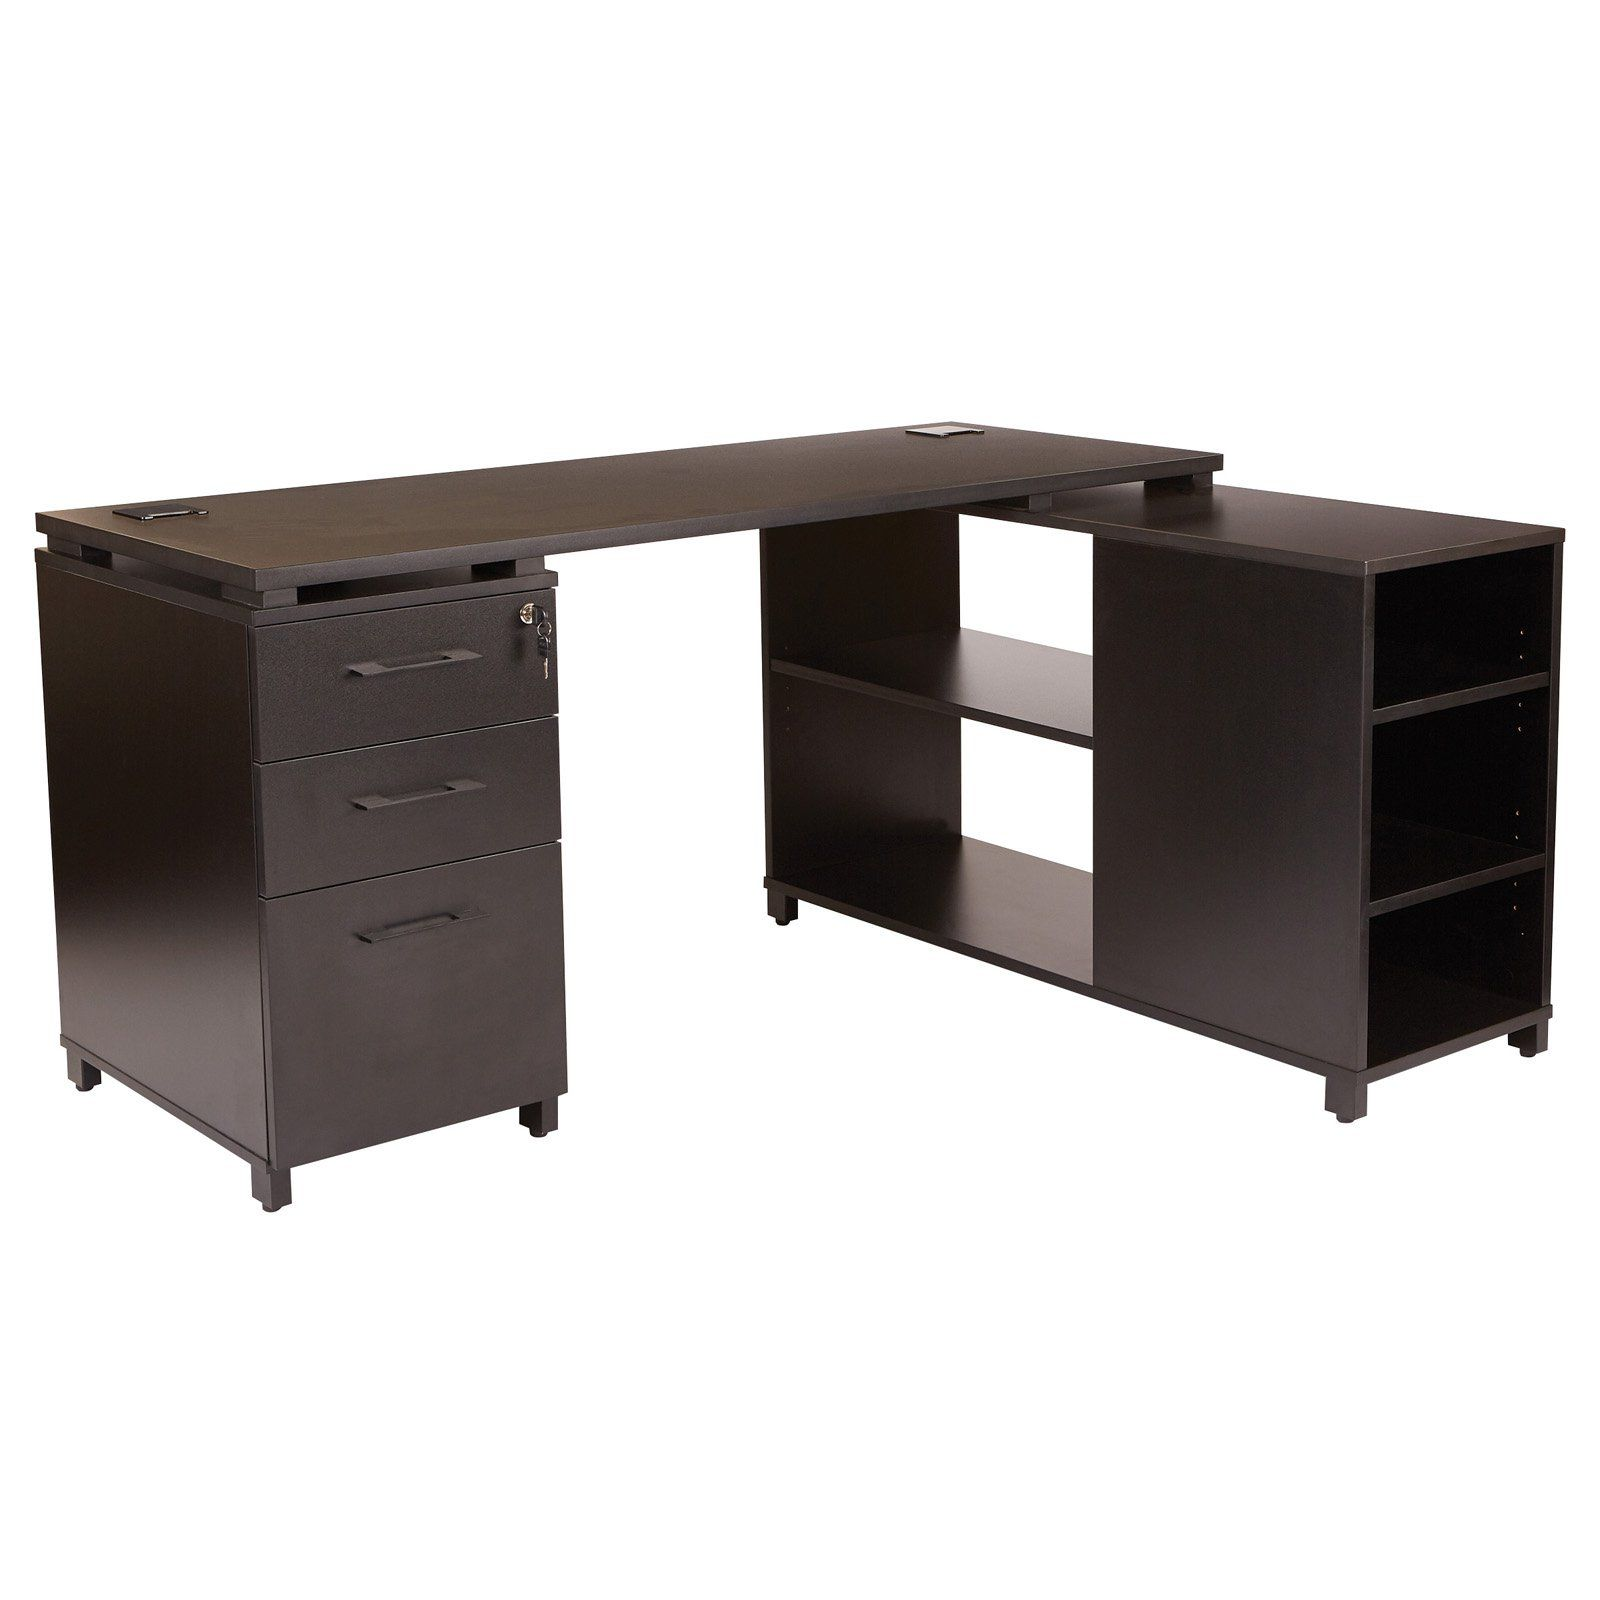 Proline Prado L Shaped Computer Desk Black L Shaped Desk Home